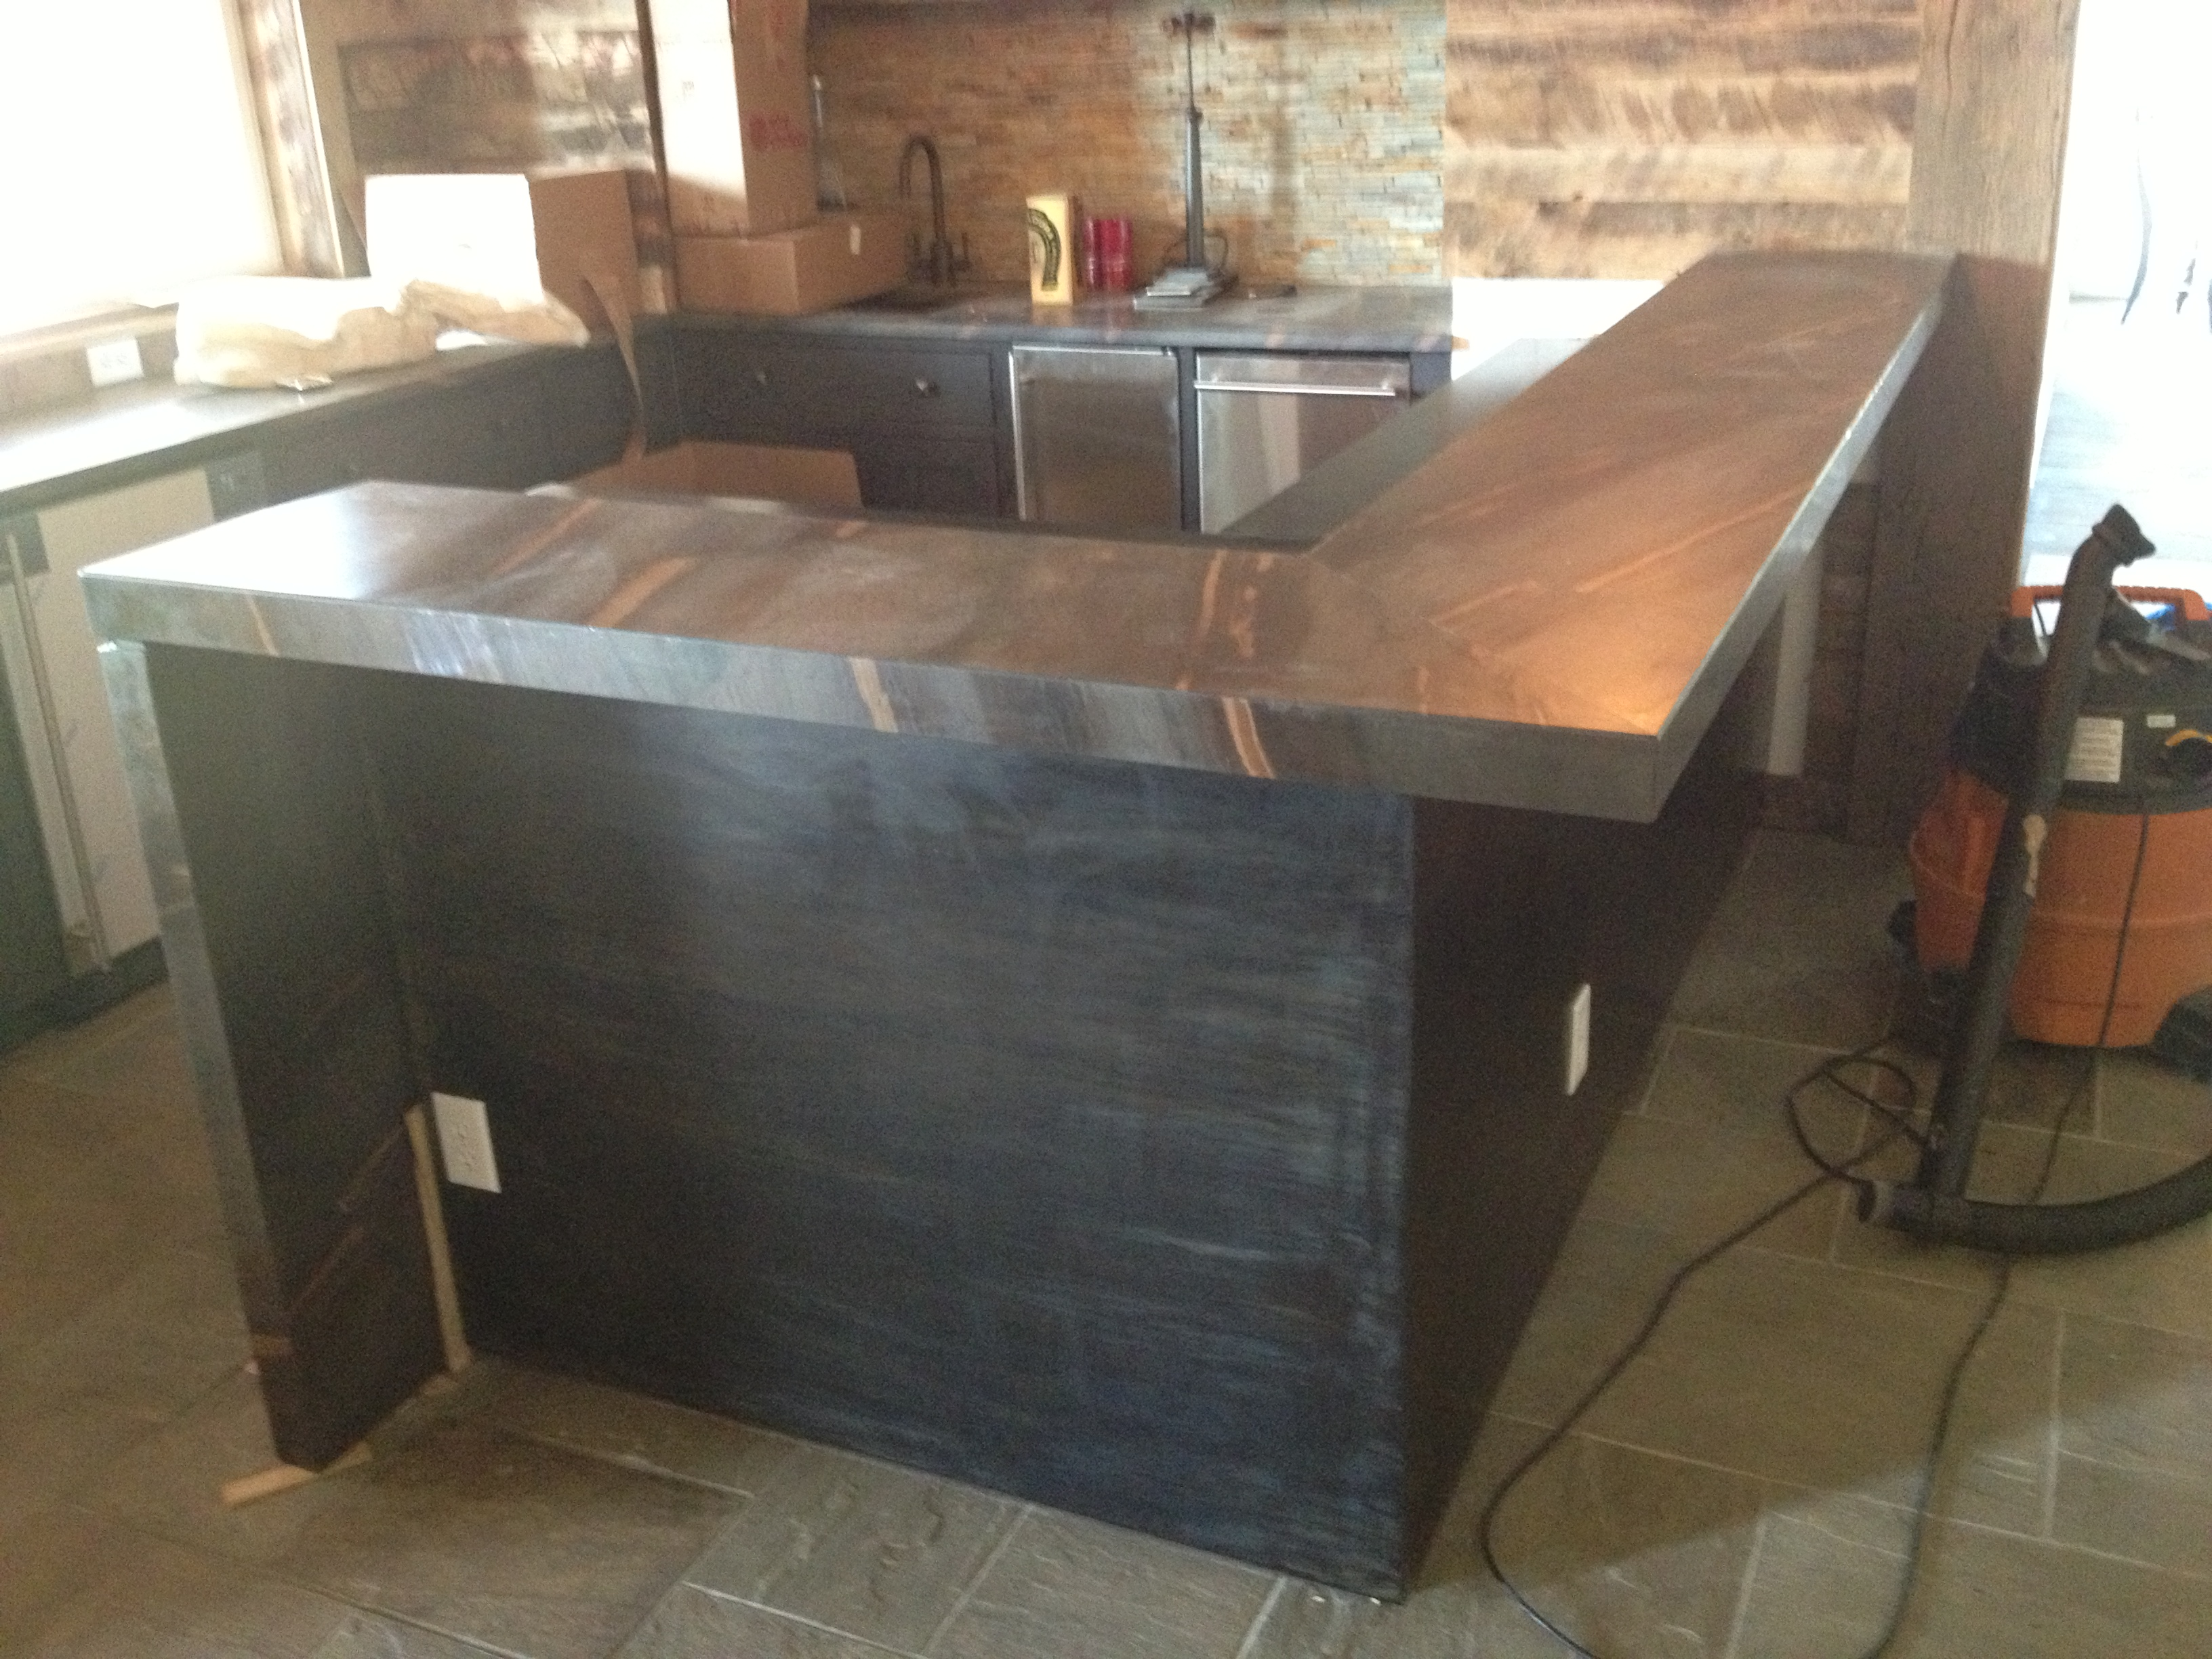 mottled steel bar wrap and counter top we have been working on.